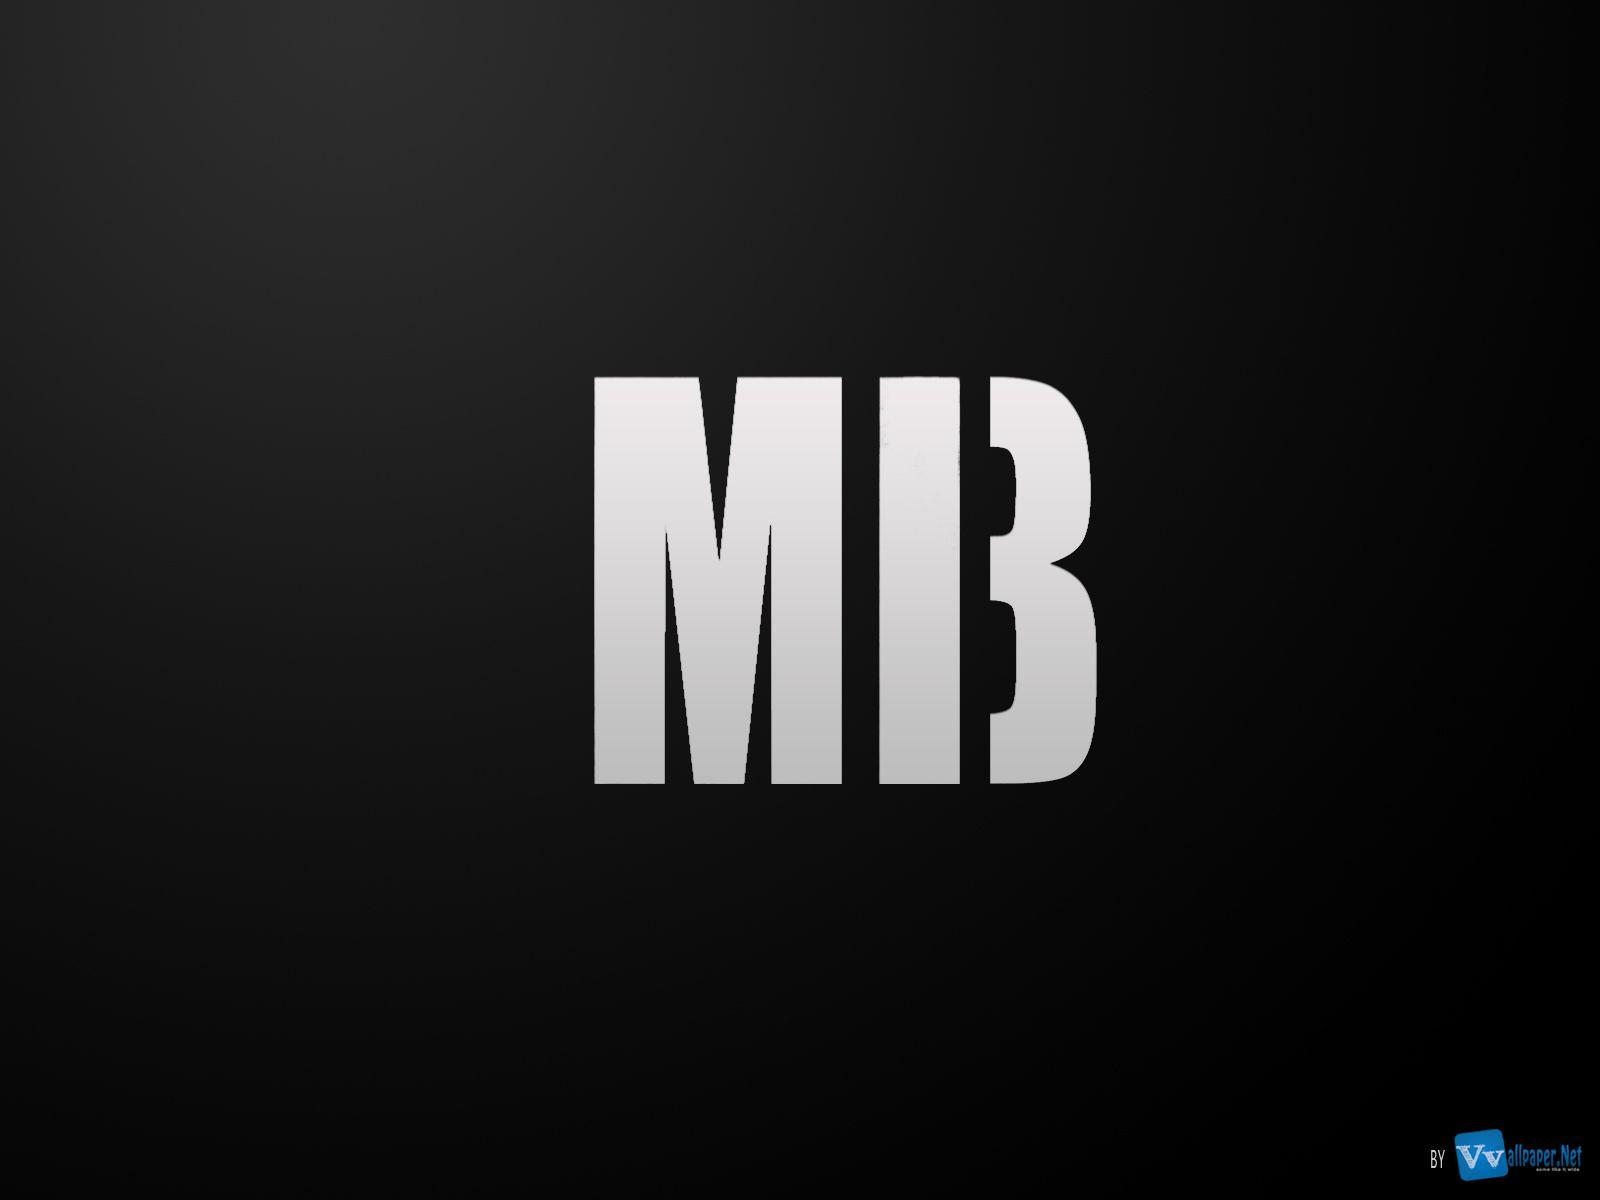 Central Wallpaper: Men in Black 3 Posters HD Wallpapers